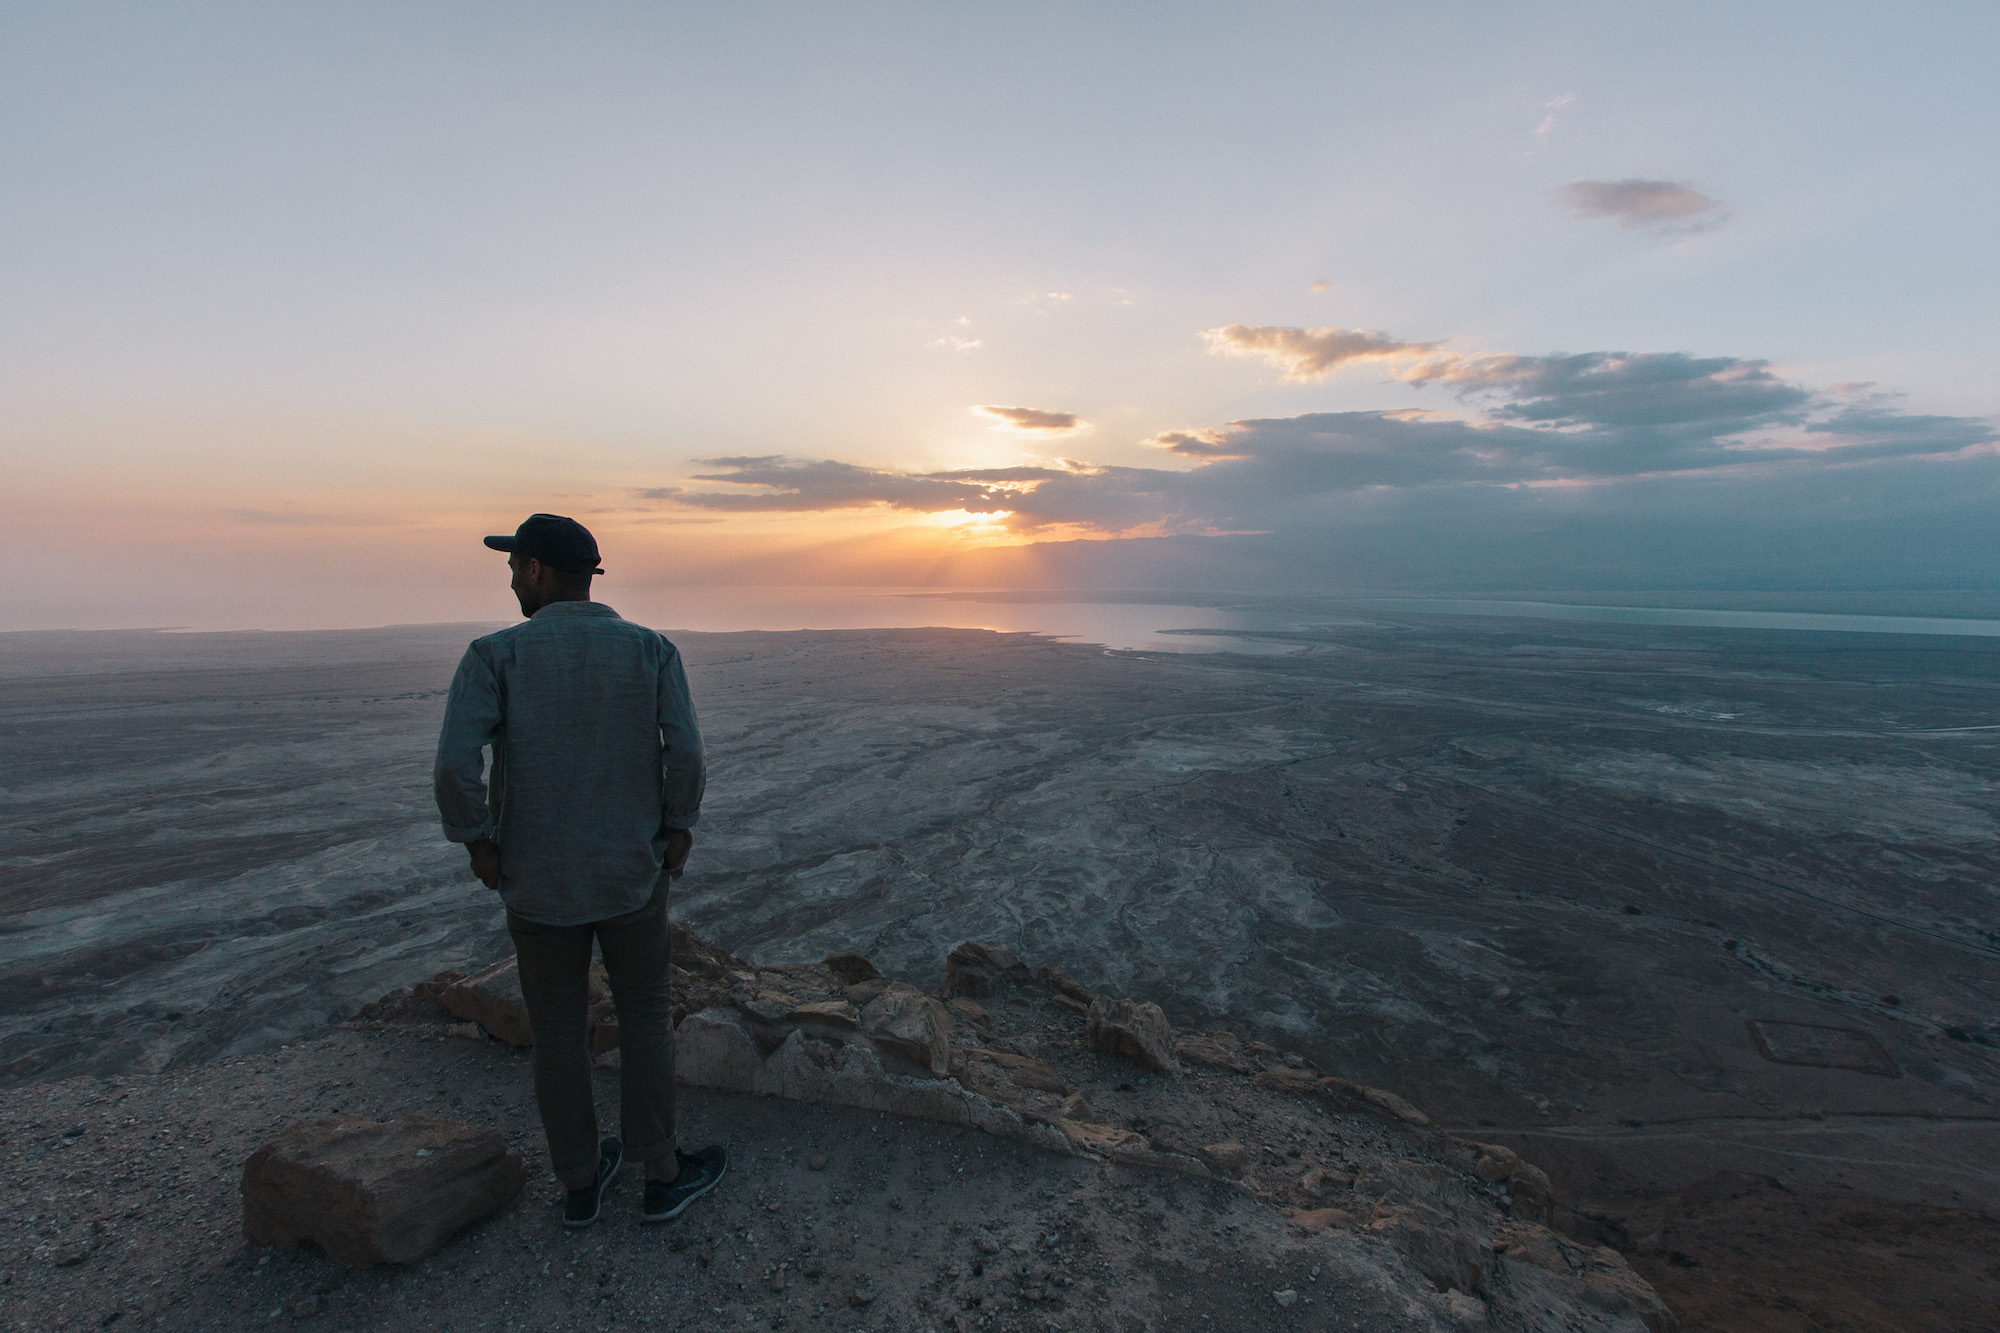 Masada - We woke up at 4am to travel to a ruin of Herods main fortress in the middle east and the view was absolutely outrageous.Masadawas built around 50BC and was a stronghold for Herod.